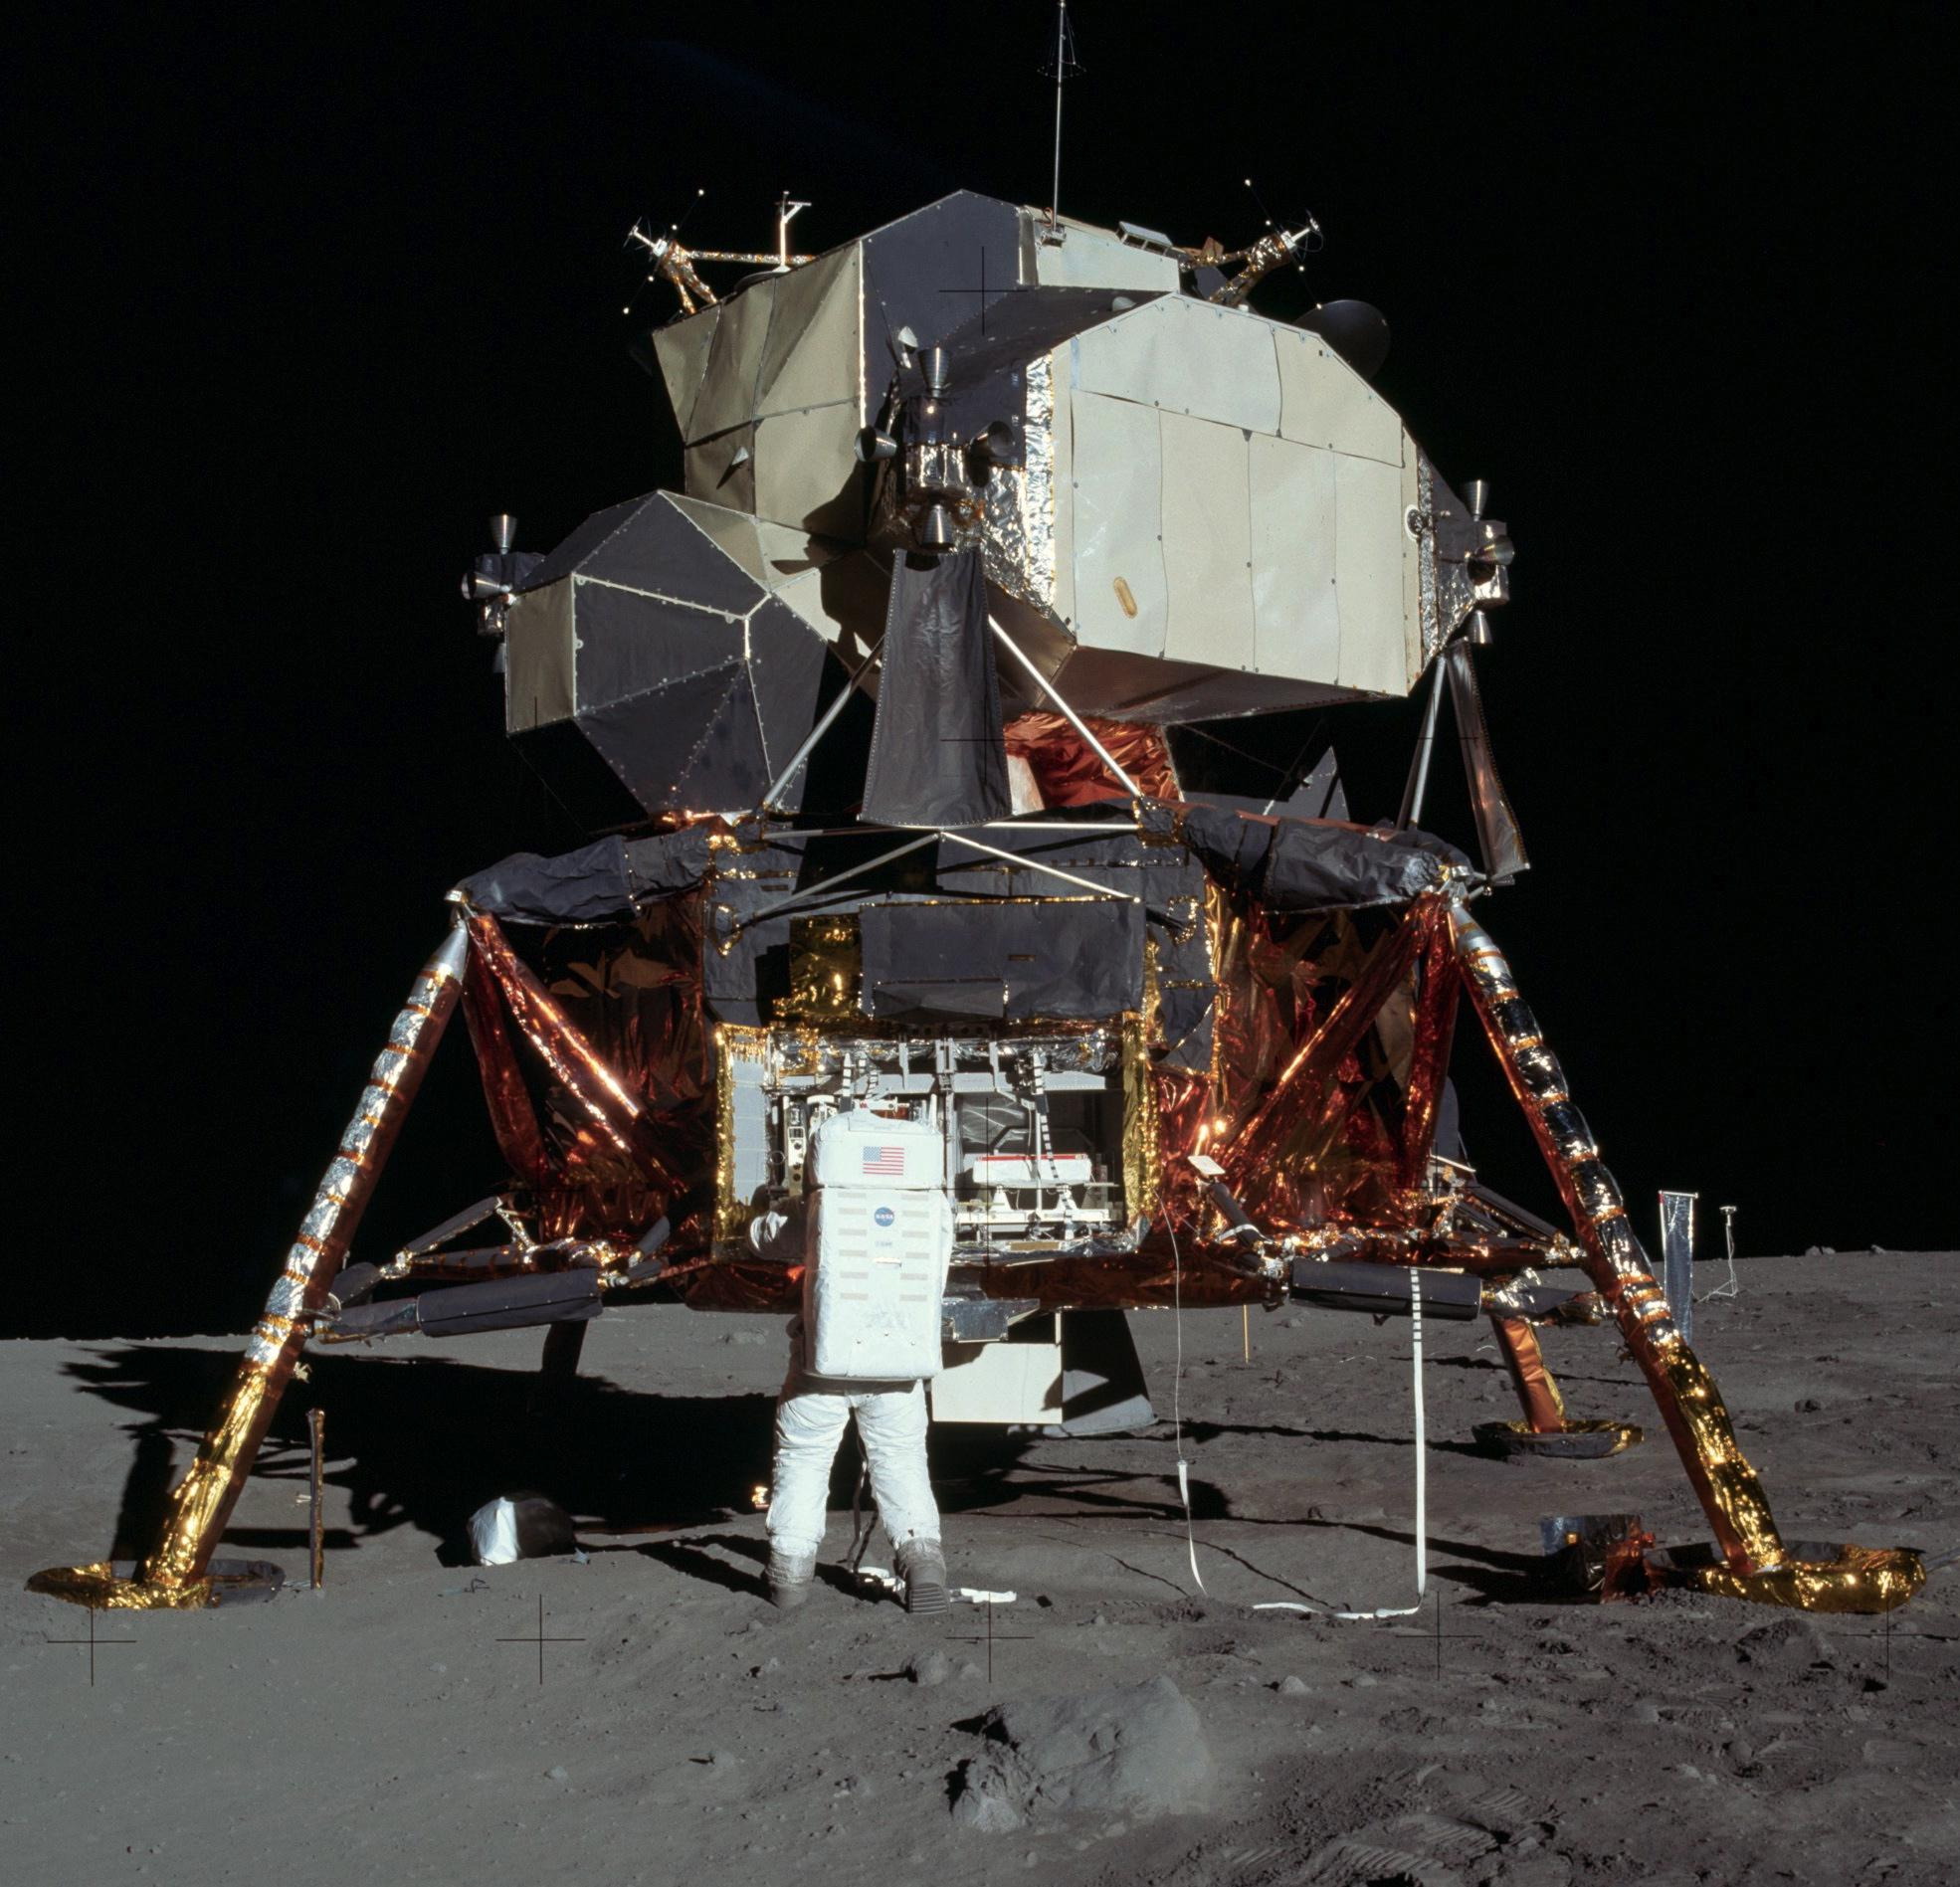 Apollo 11 Lunar Module with Neil Armstrong